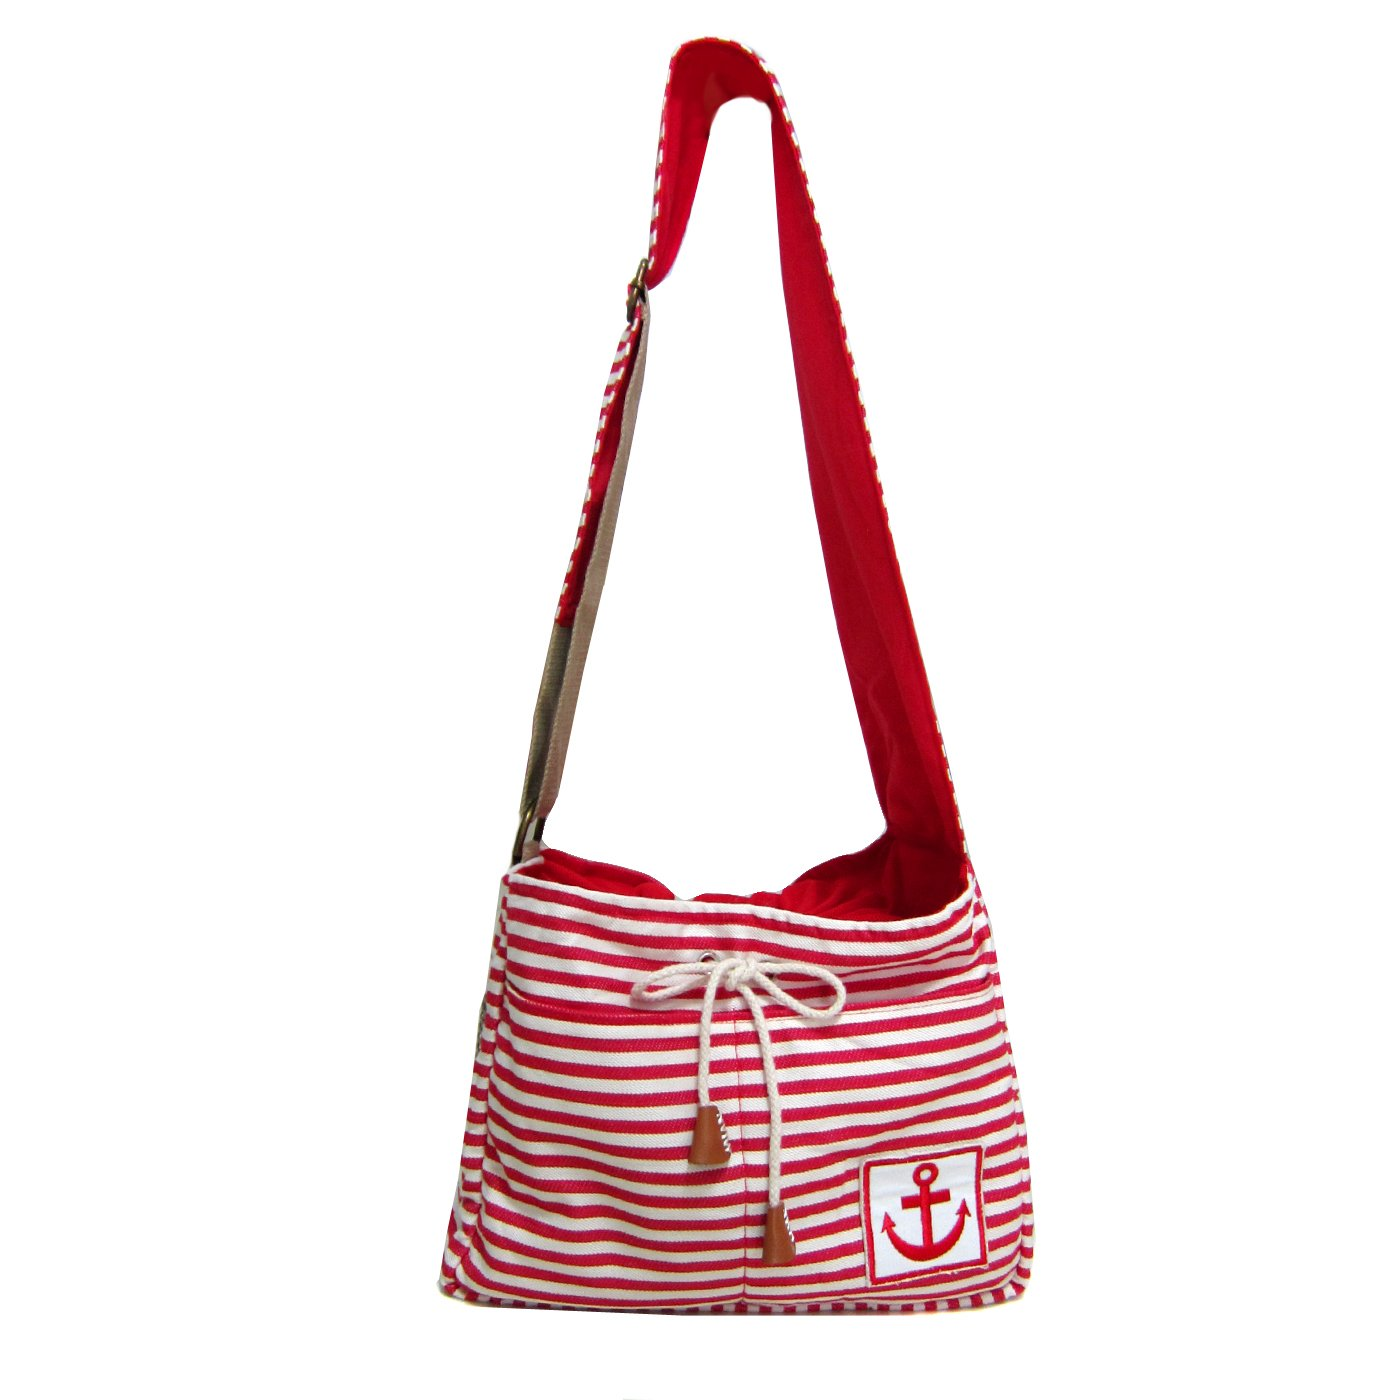 Alfie Pet by Petoga Couture - Rei Pet Sling Carrier with Adjustable Strap - Color: Red, Size: M